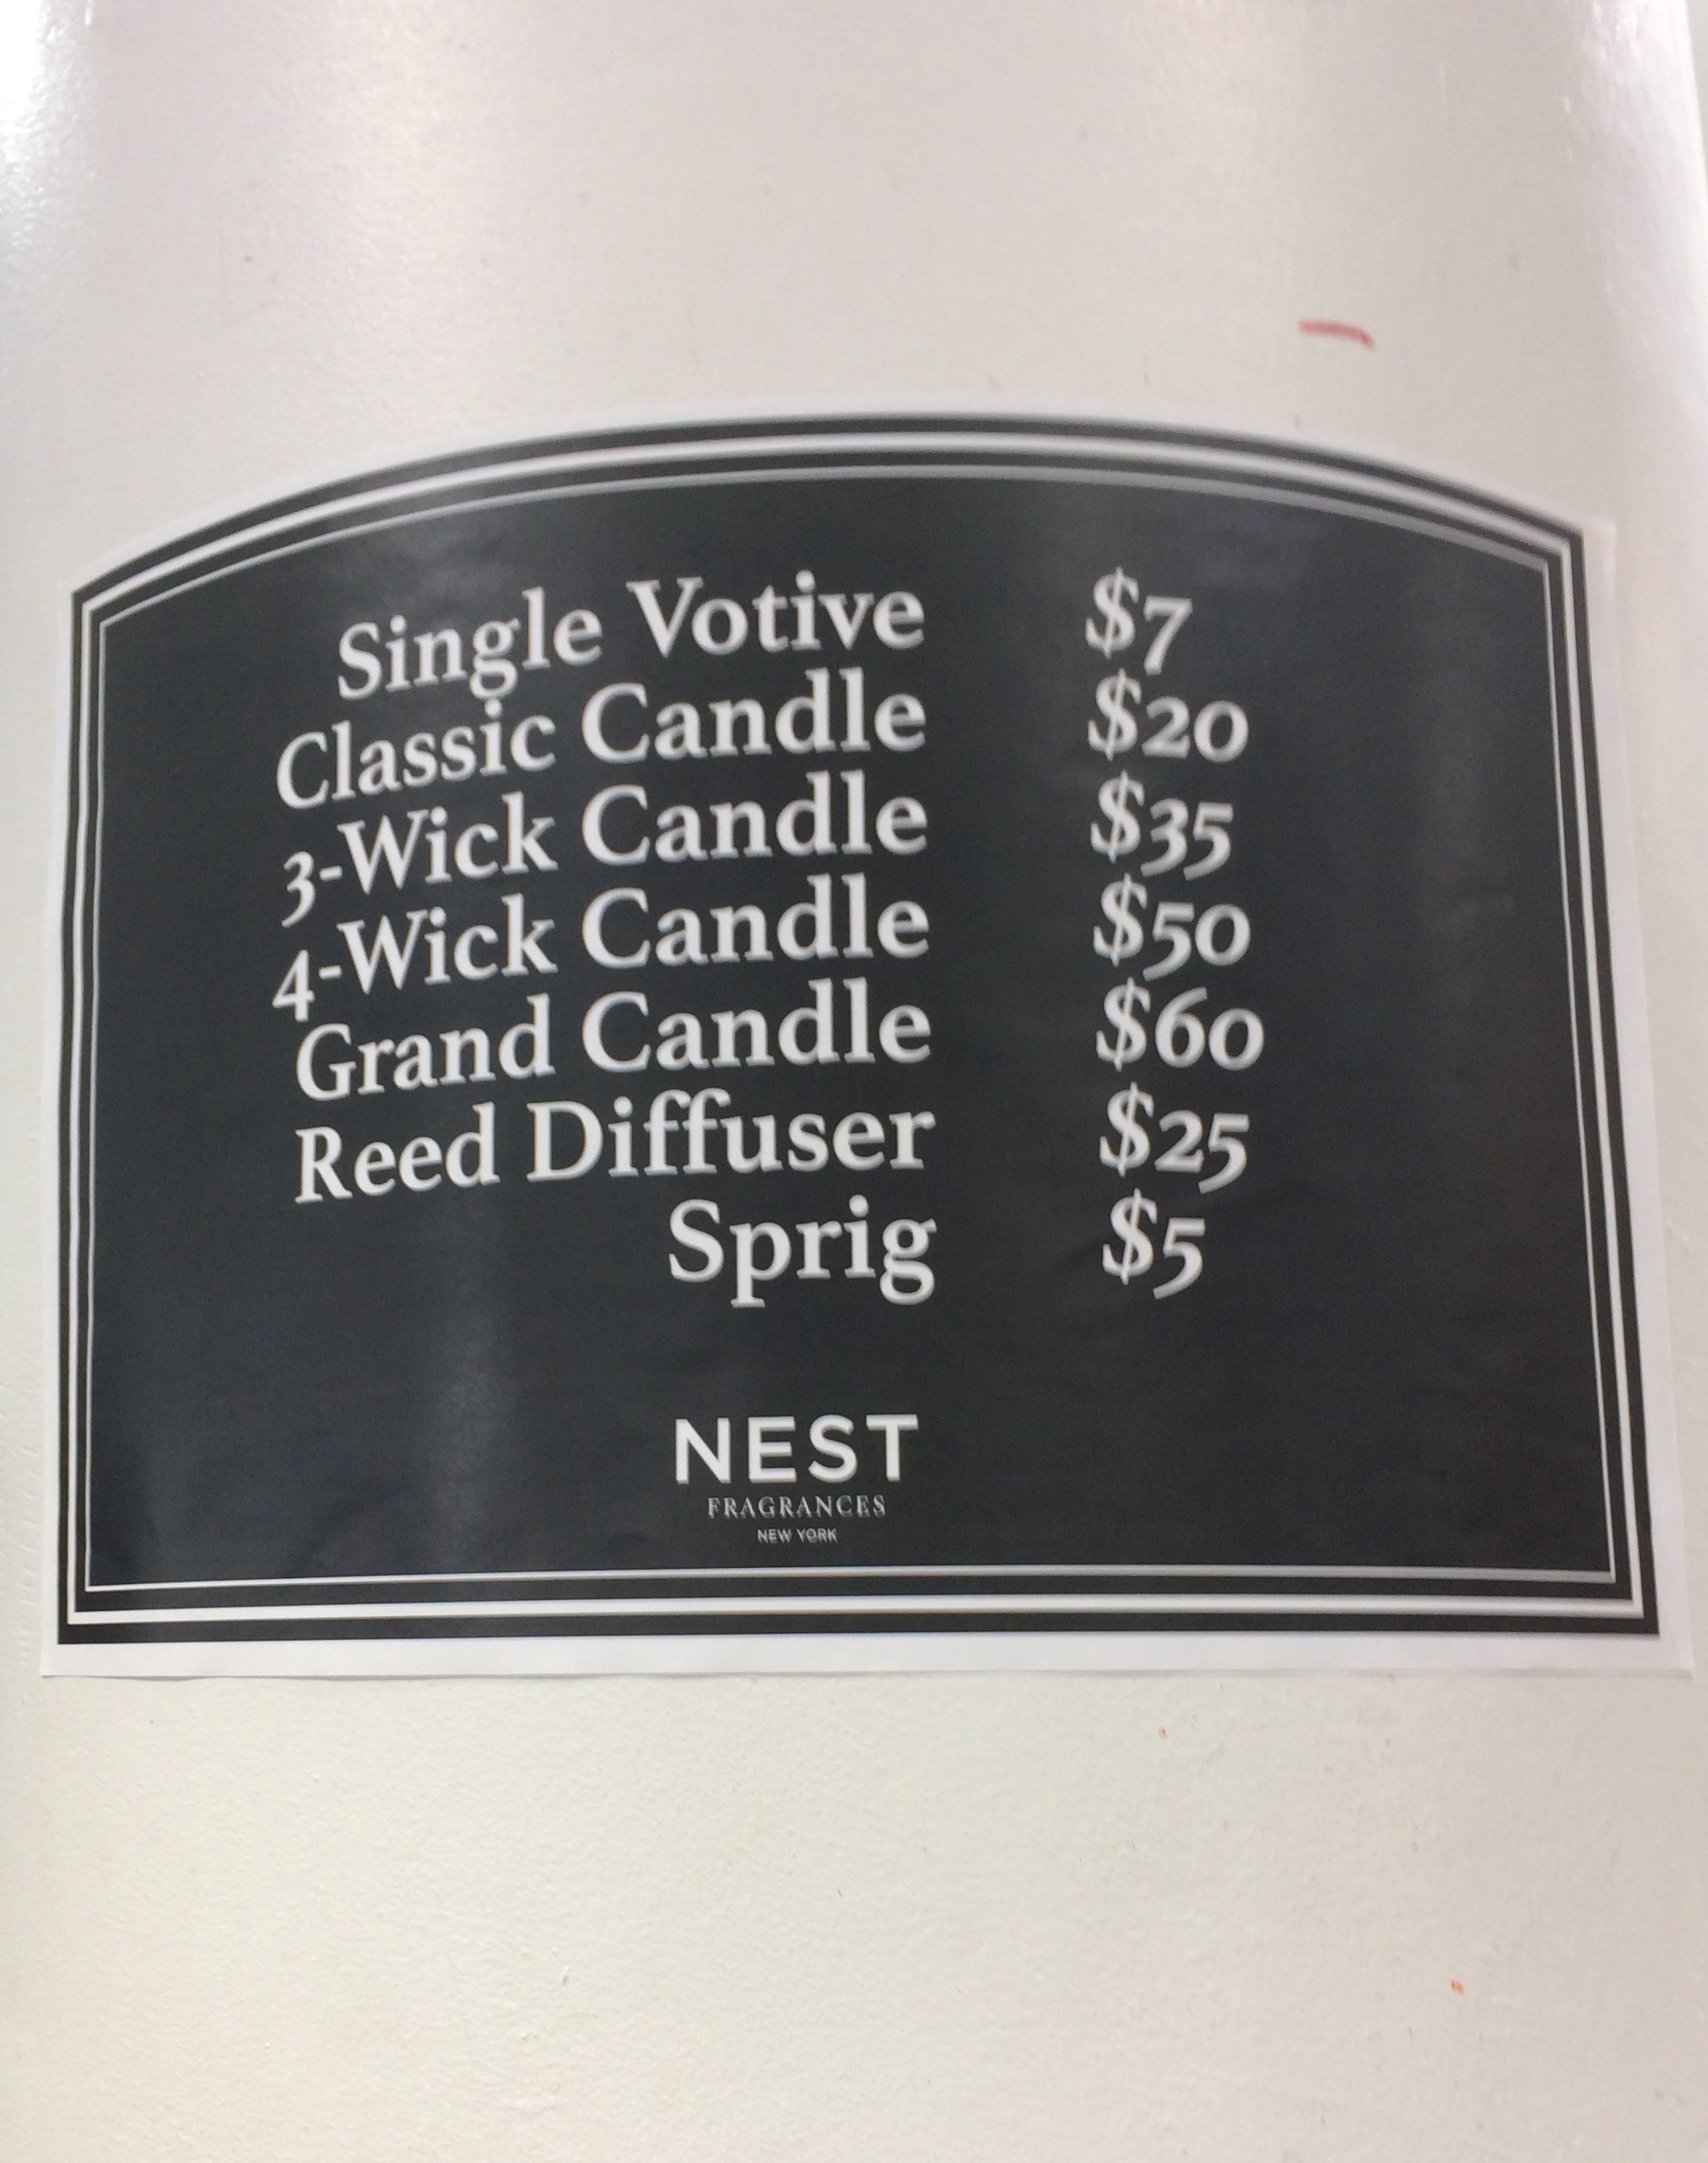 nest fragrance and s'ip by swell sample sale